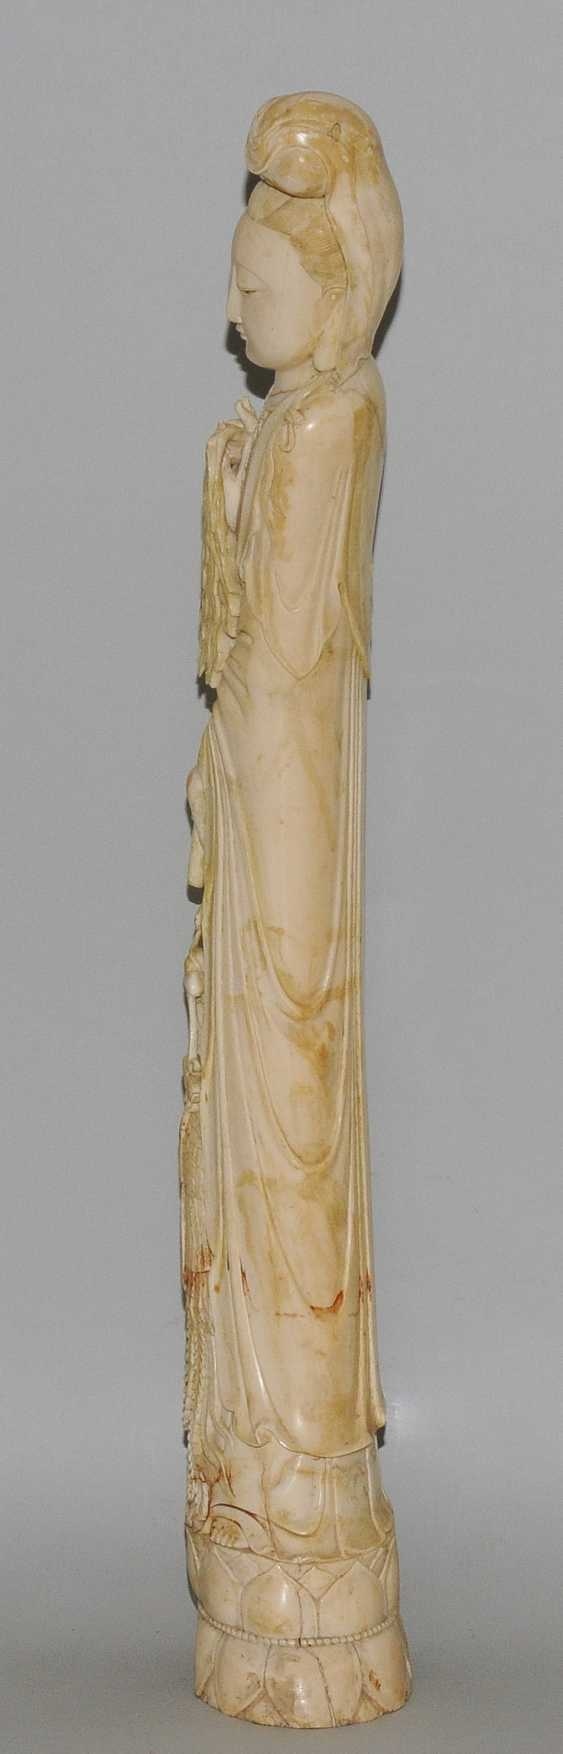 A Large Ivory Figure - photo 6